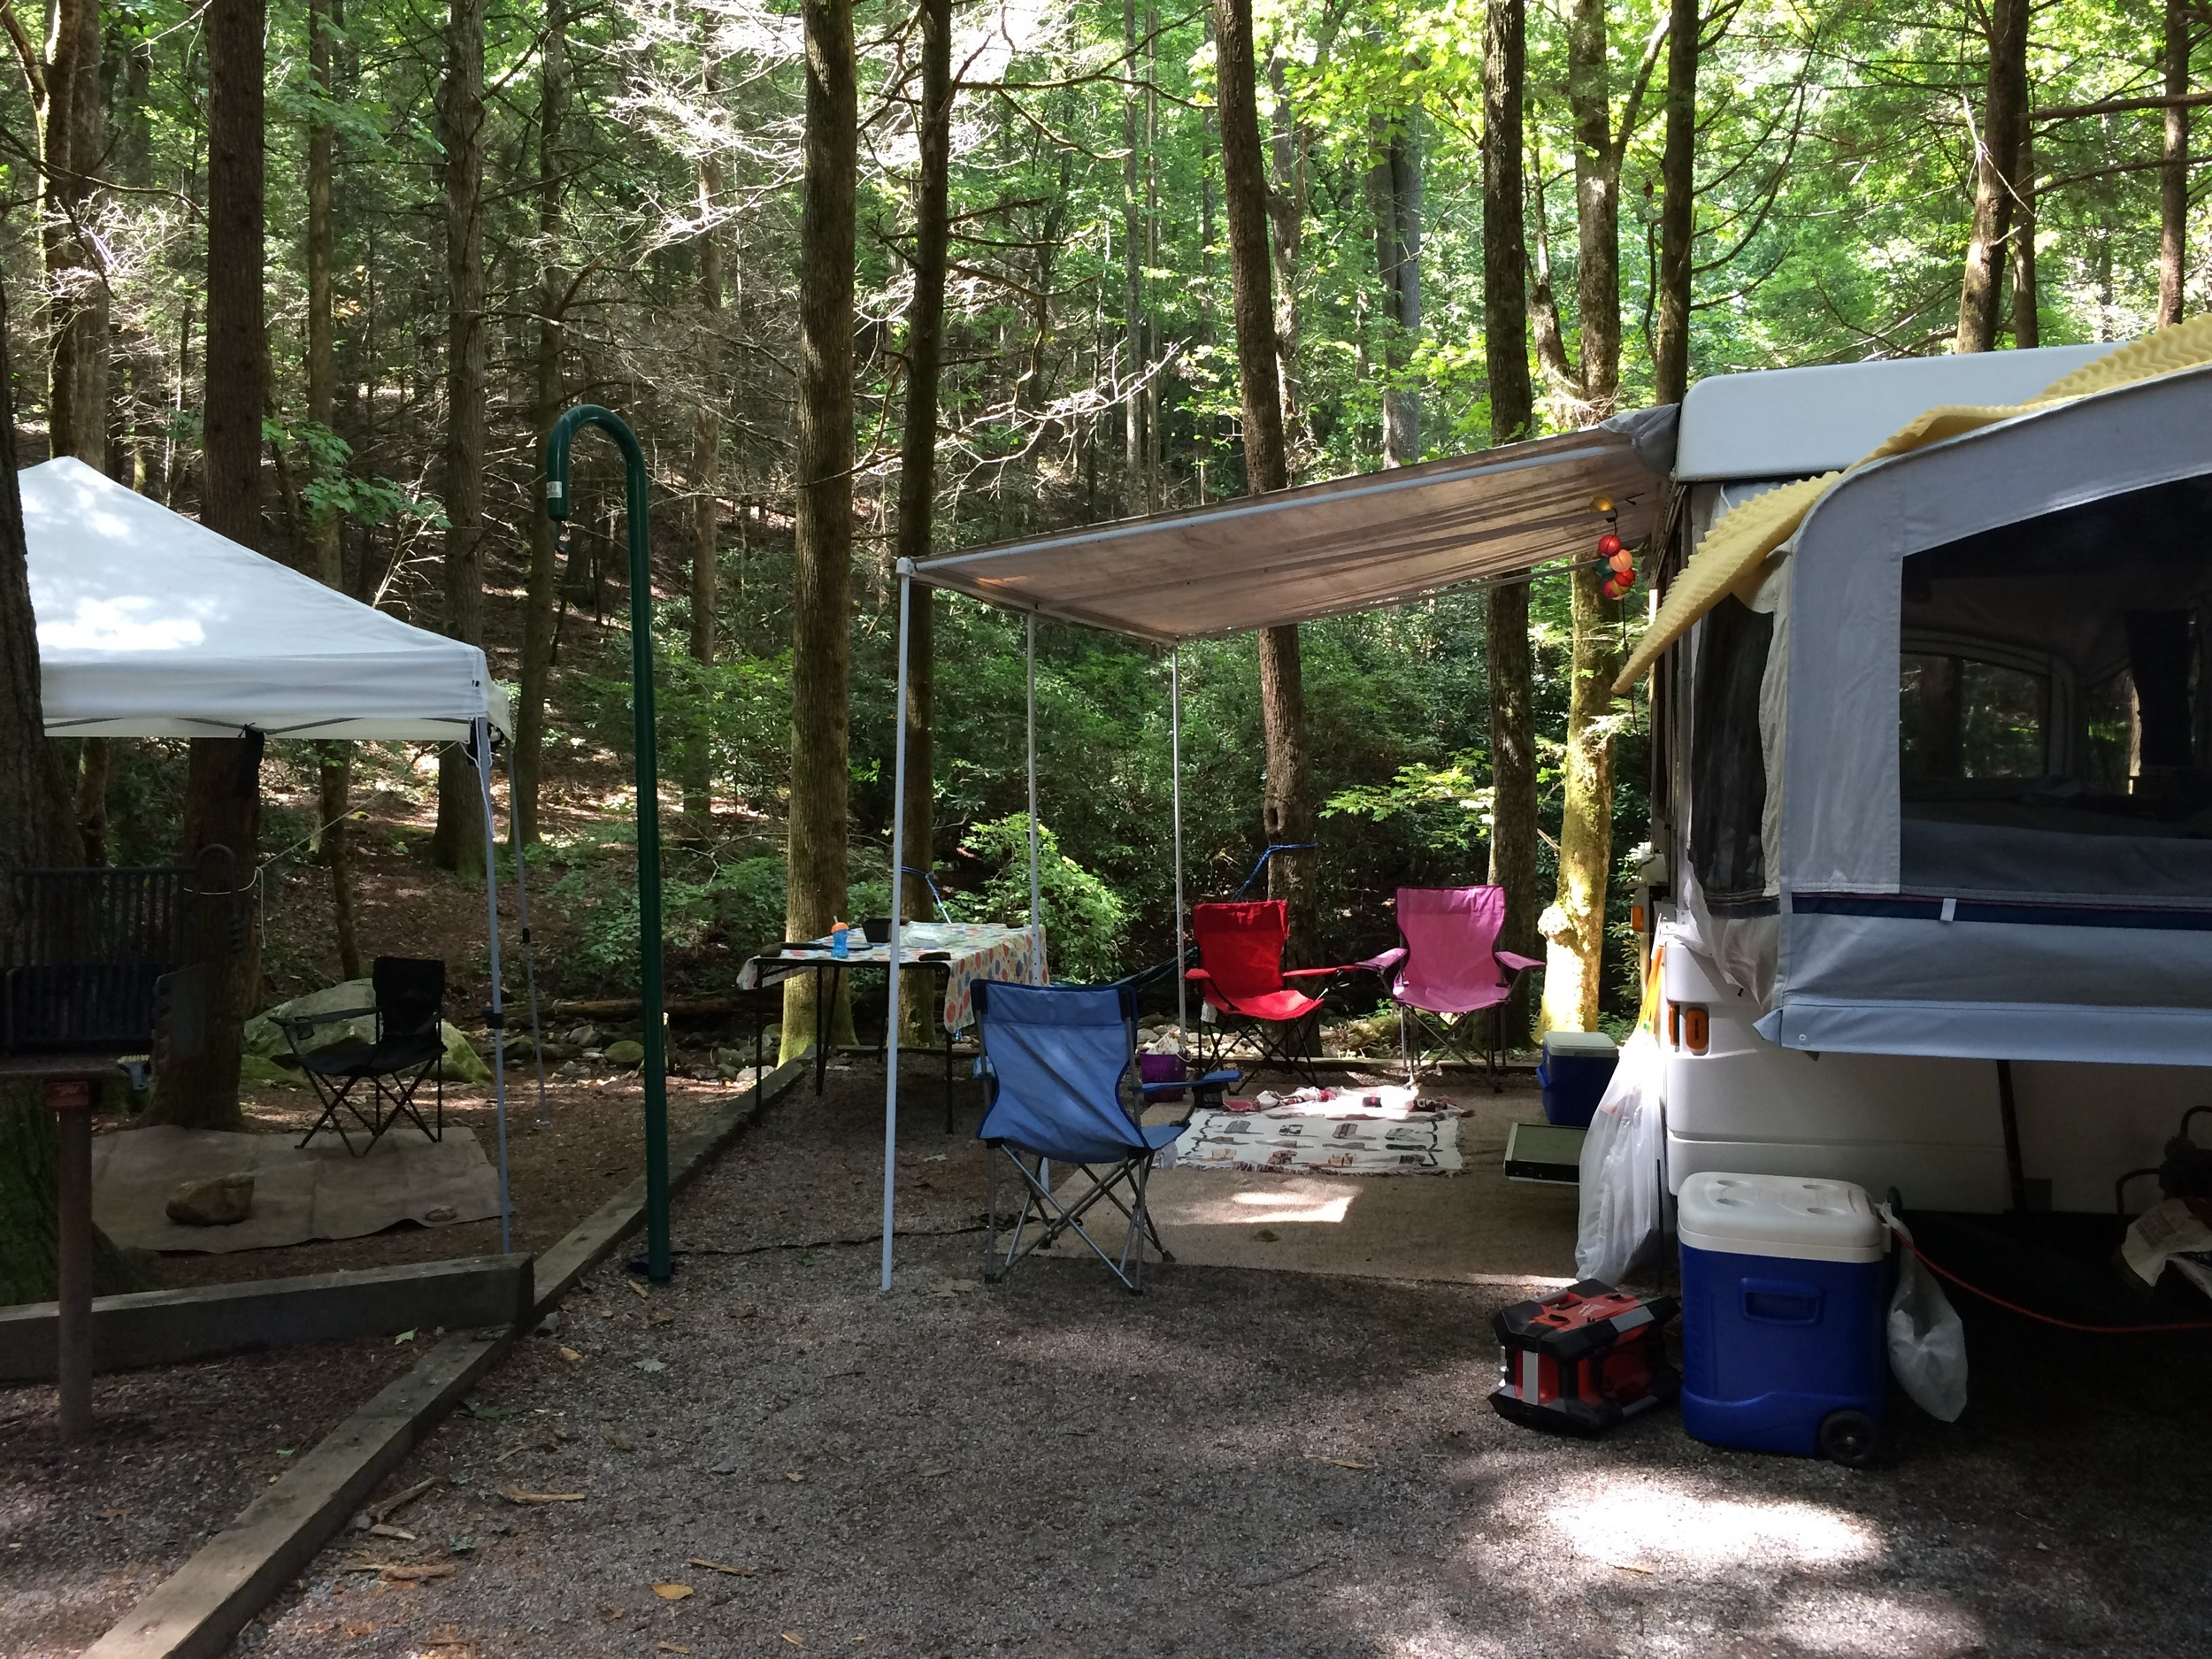 Plenty of space to set up, with running creek in the back.